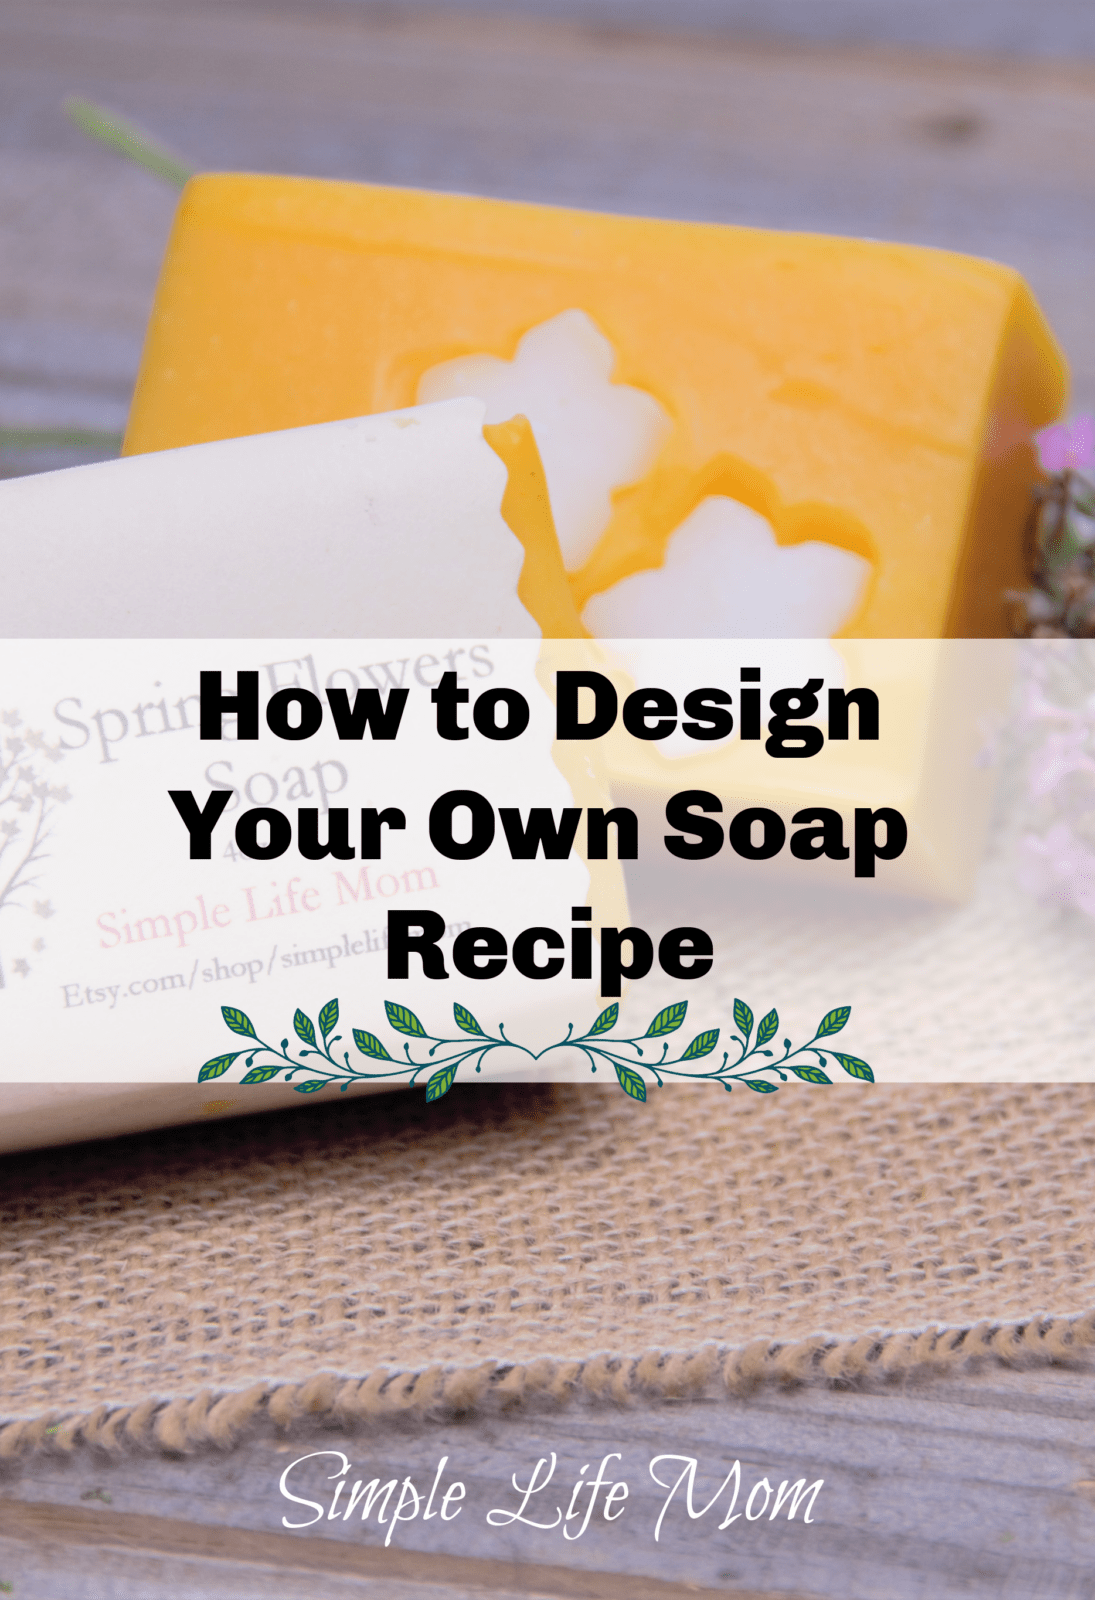 How to Design Your Own Soap Recipe from Simple Life Mom